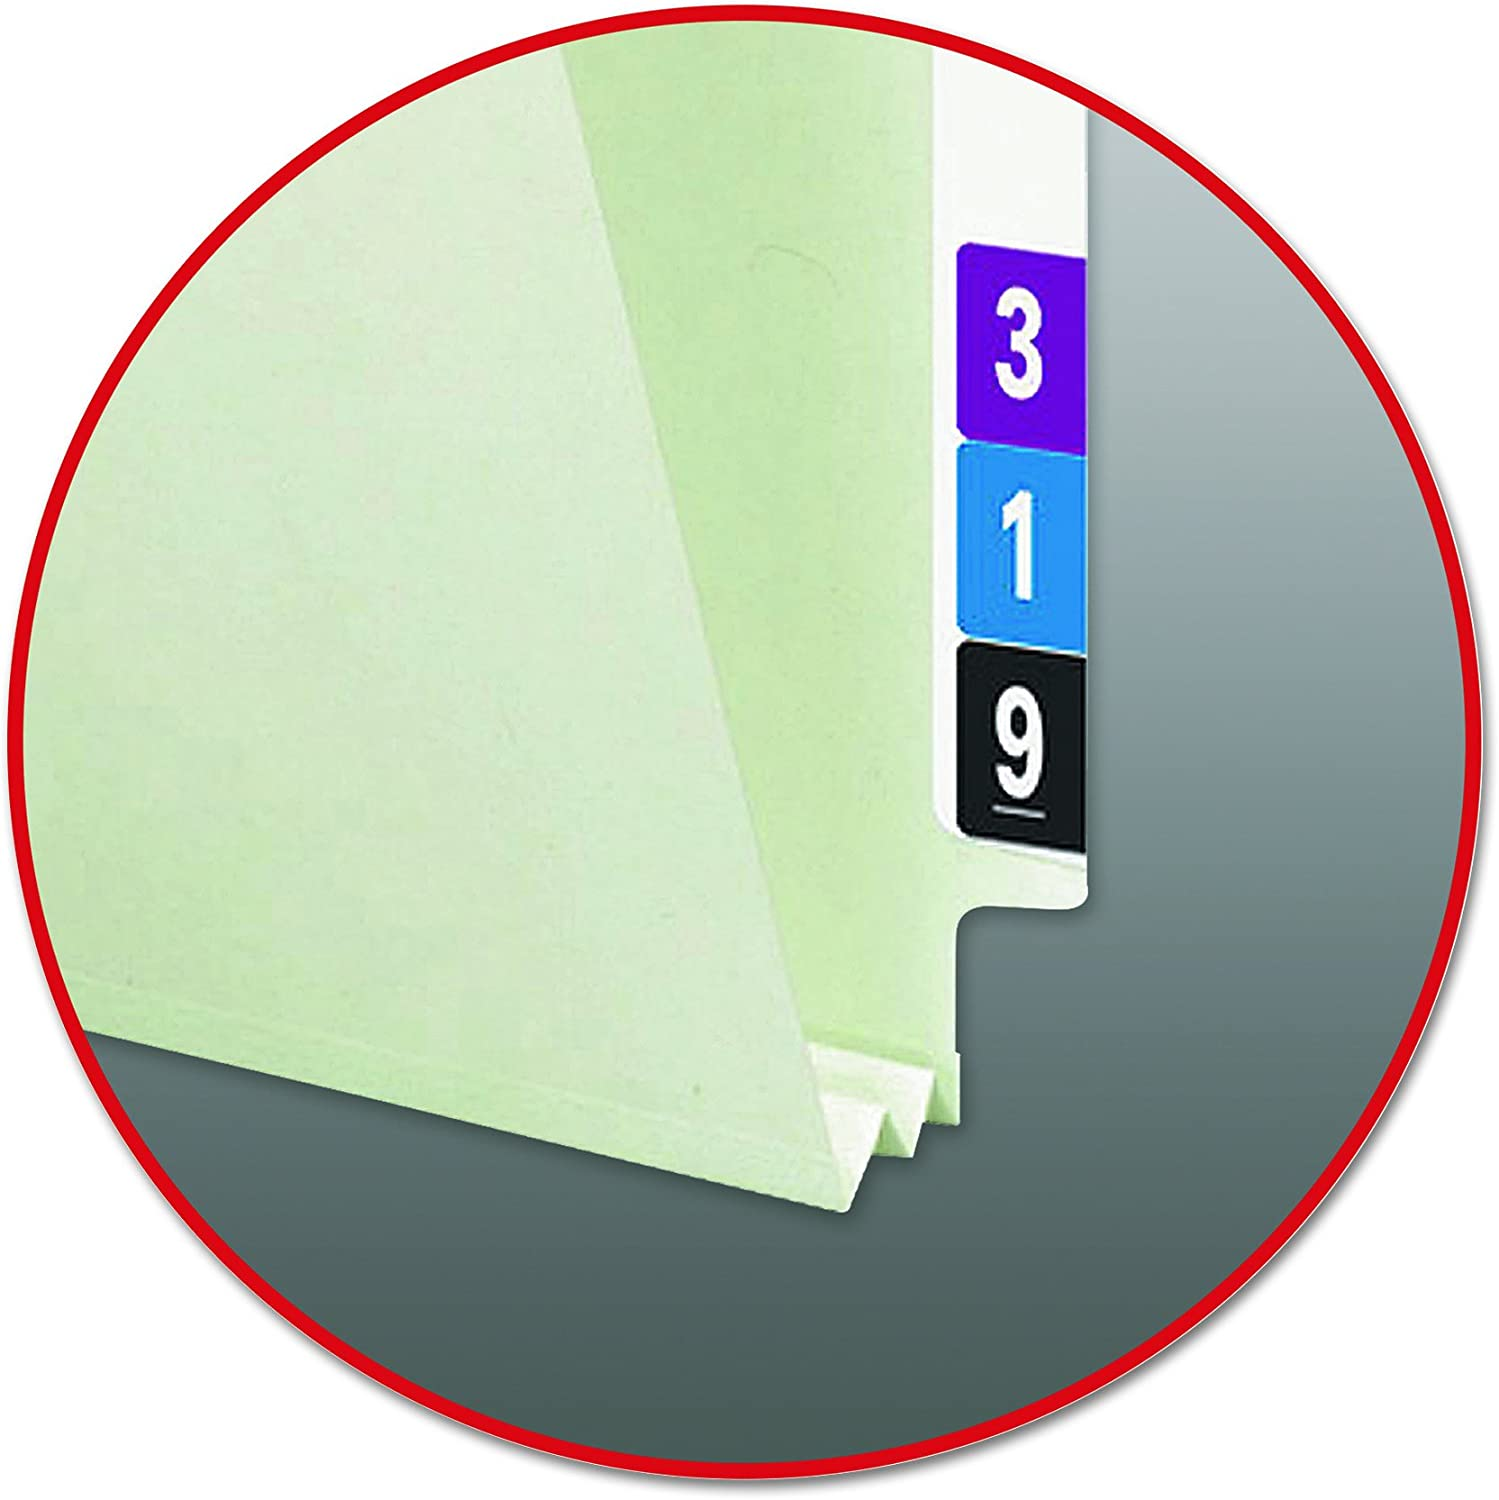 25 per Box 37725 Smead End Tab Pressboard Fastener File Folder with SafeSHIELD Fasteners 3 Expansion Legal Size 2 Fasteners Gray//Green